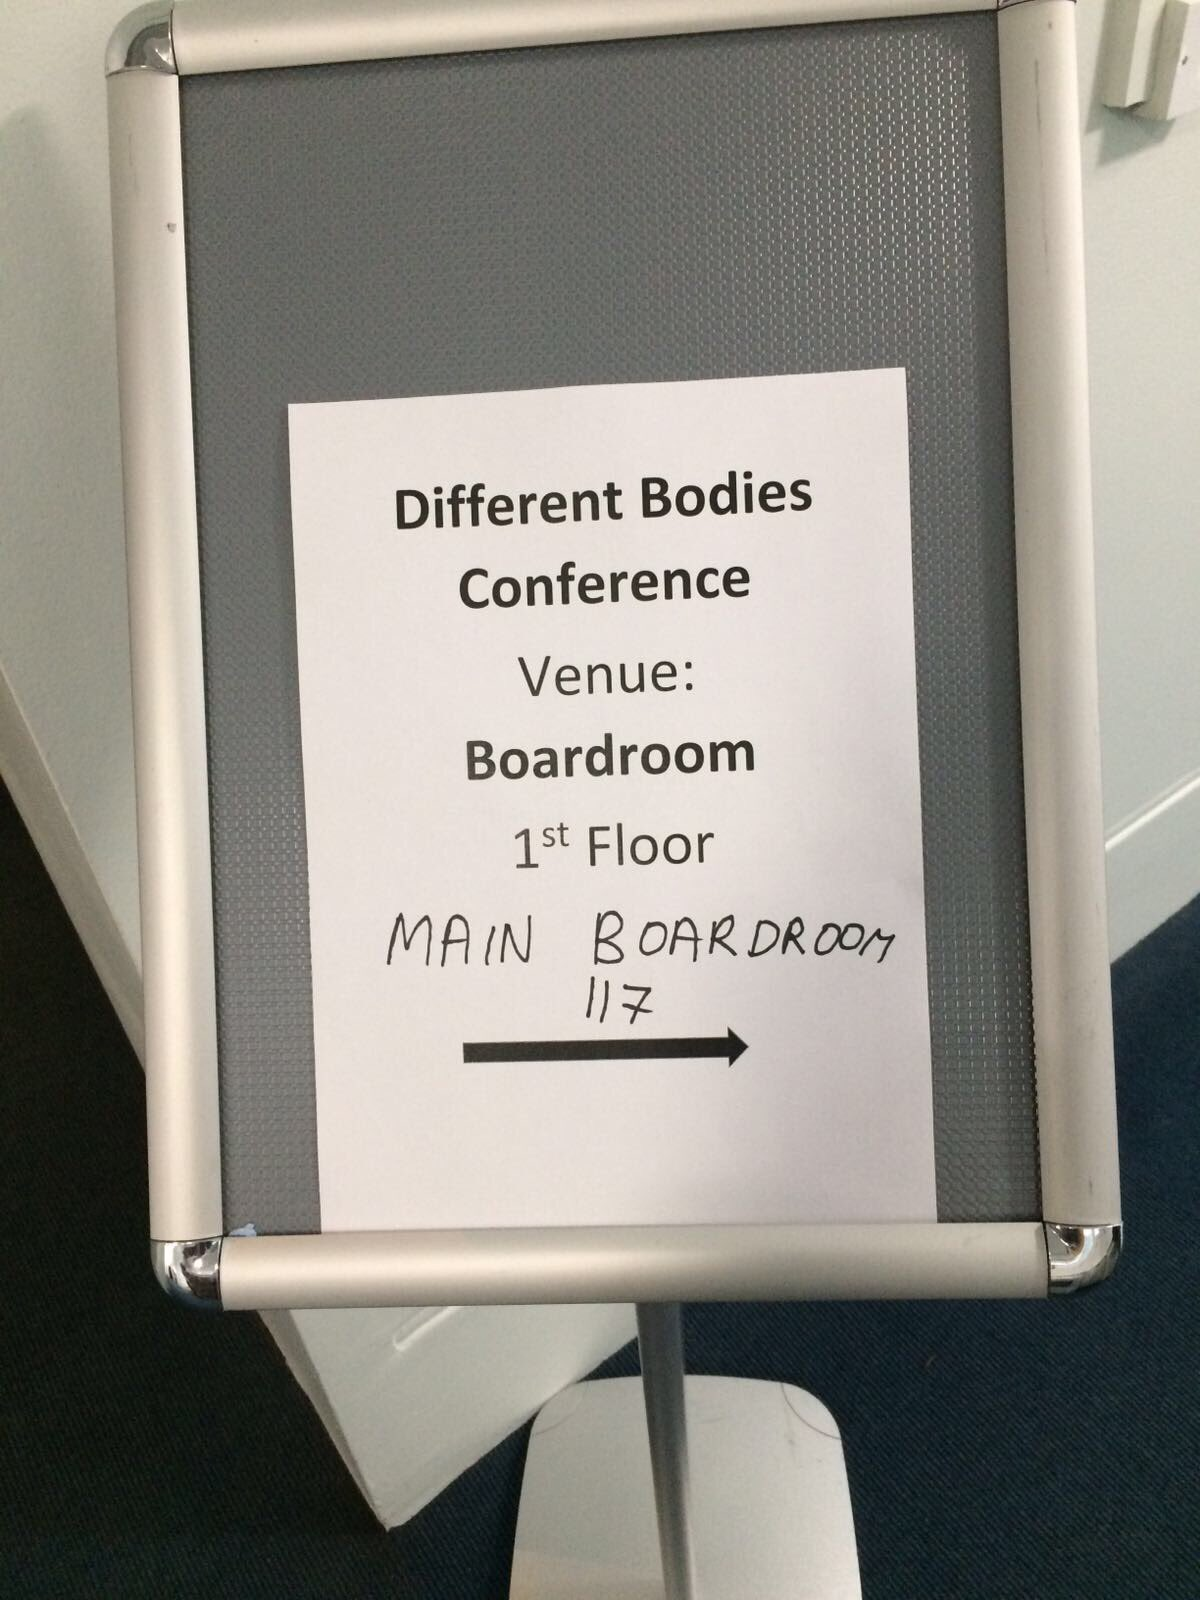 Really looking forward to some interesting panels/keynotes from specialists today @UniWestminster #DifferentBodies https://t.co/DNgYKvmSrj